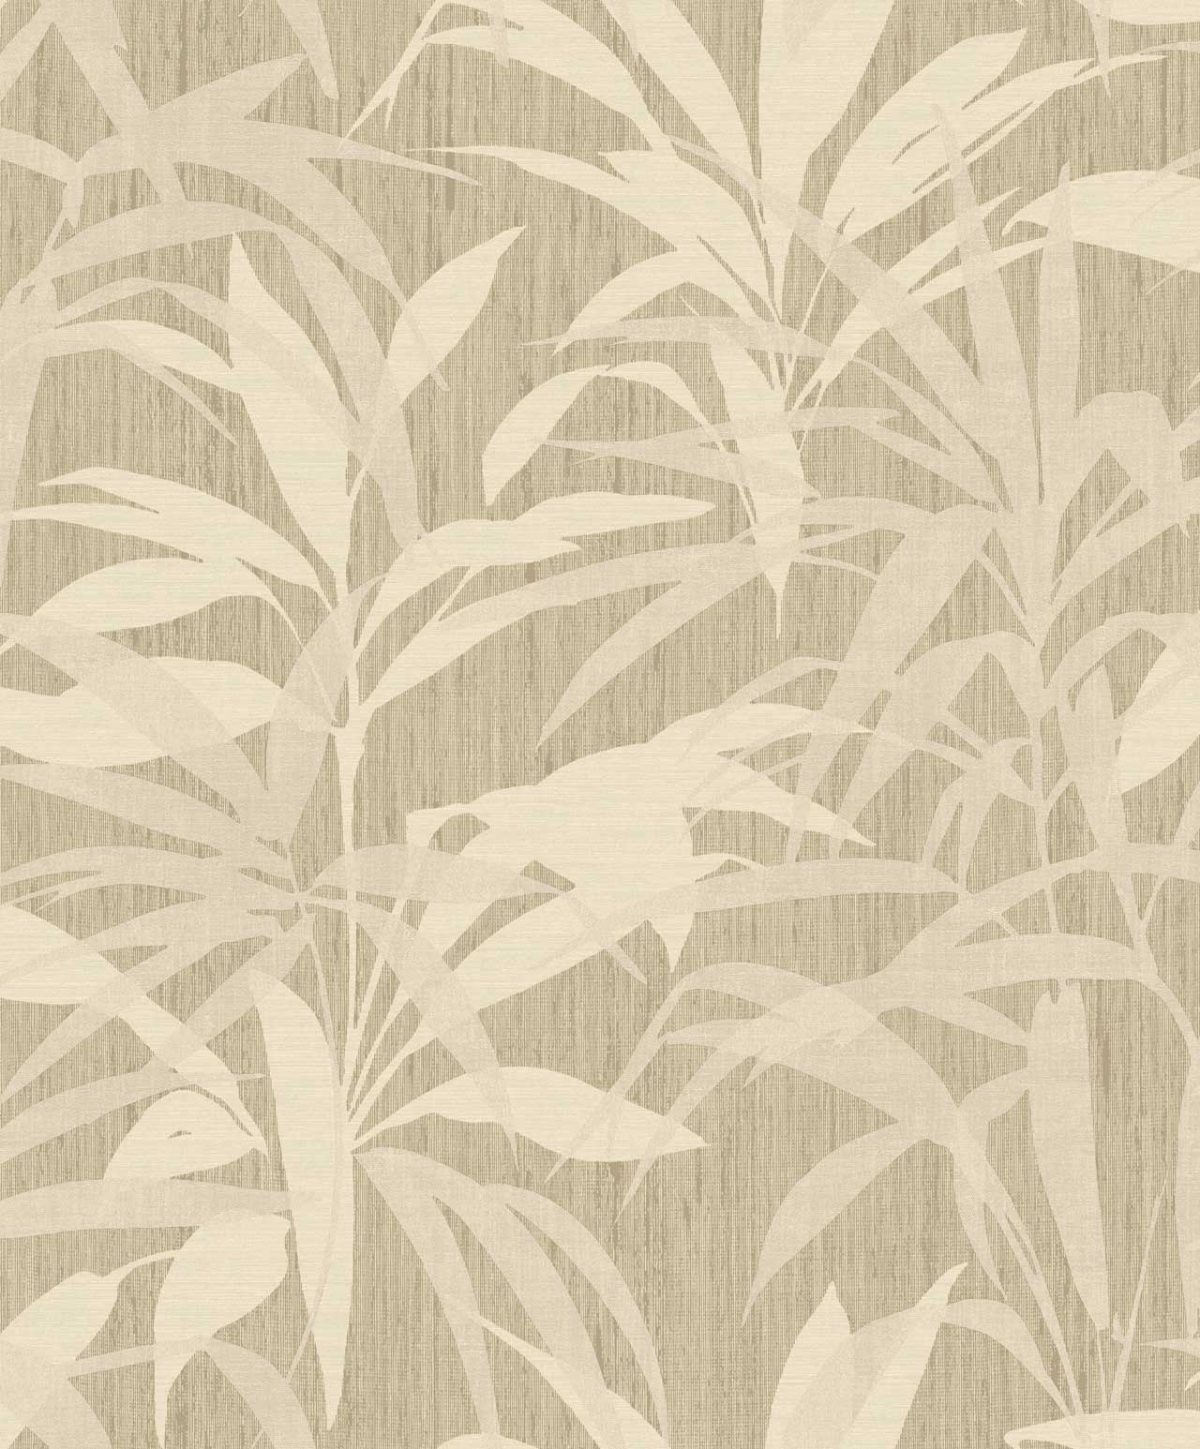 Sloan-Luxury-Wallpaper-SL00840-SLOANE